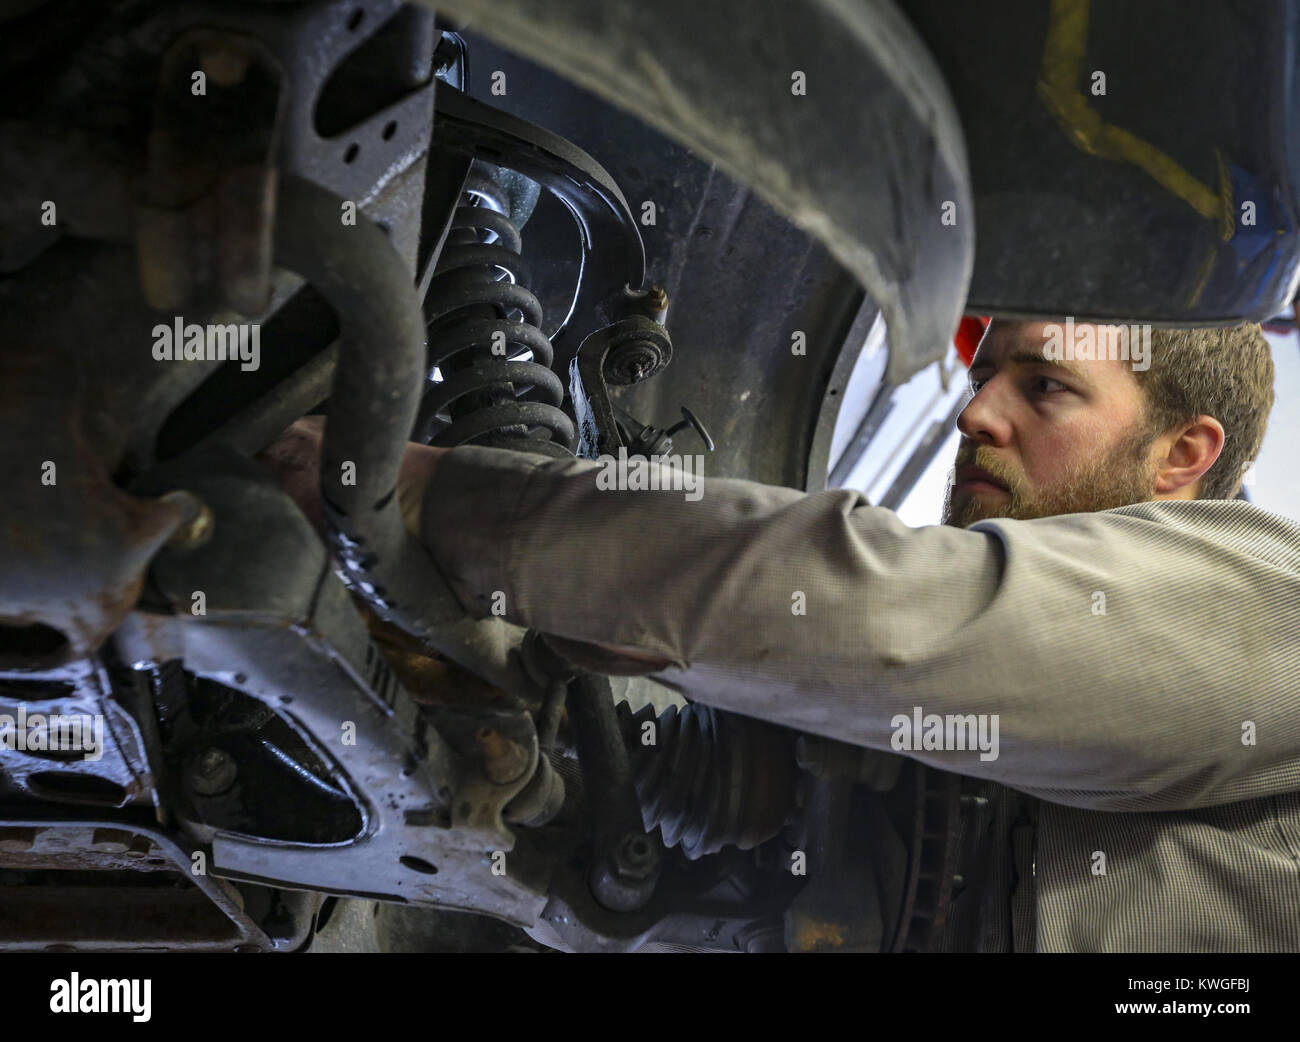 Davenport, Iowa, USA. 19th Jan, 2017. Manager Bill Dittmer reaches in through the suspension assembly of a Honda - Stock Image